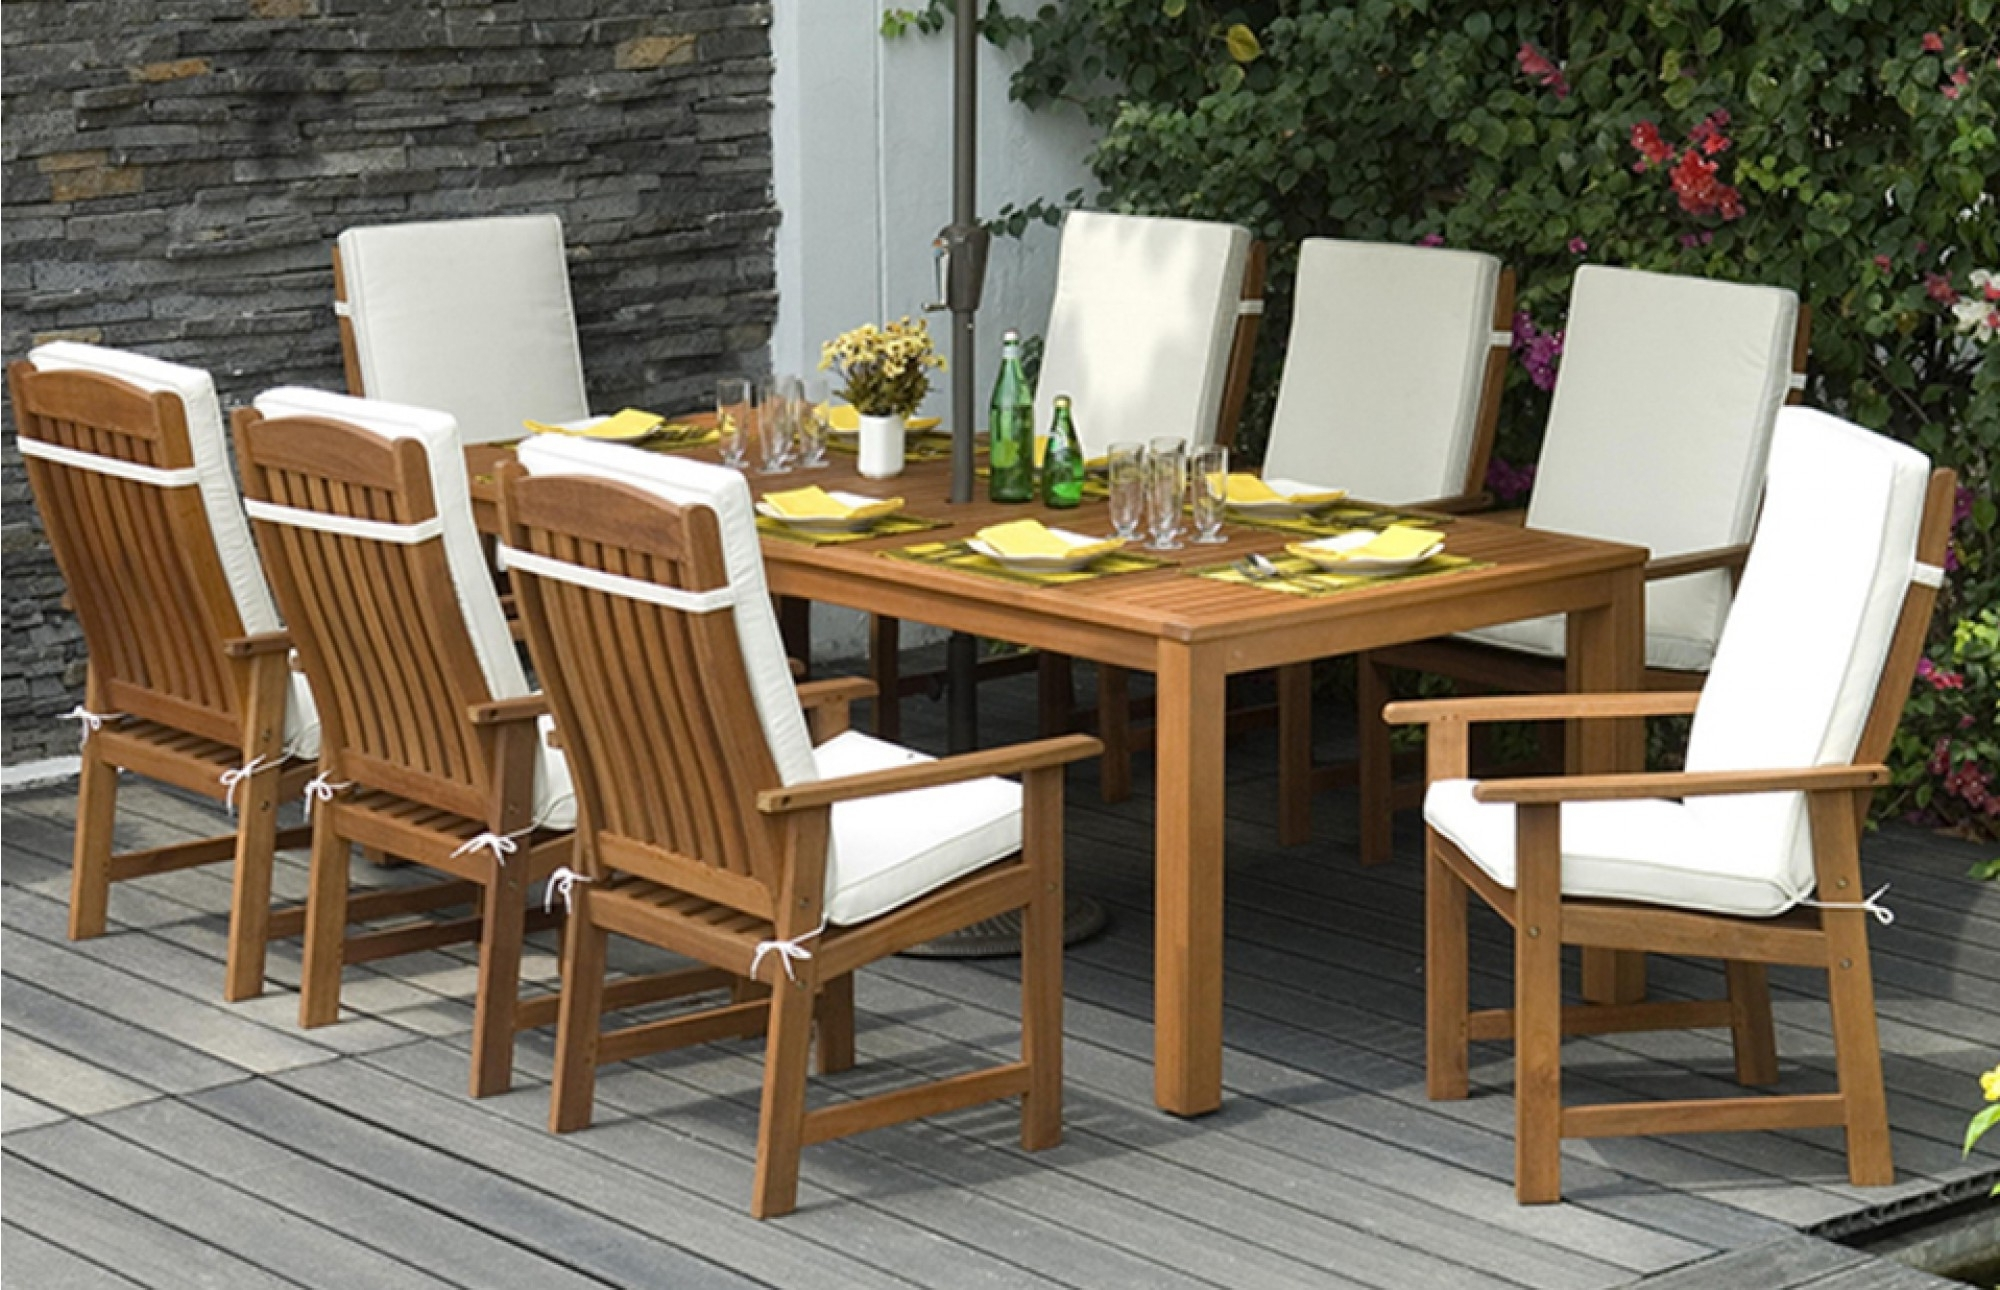 8 Seat Outdoor Dining Tables Regarding Widely Used Patio: Marvellous Wooden Patio Set Outdoor Furniture Wood Types (View 5 of 25)